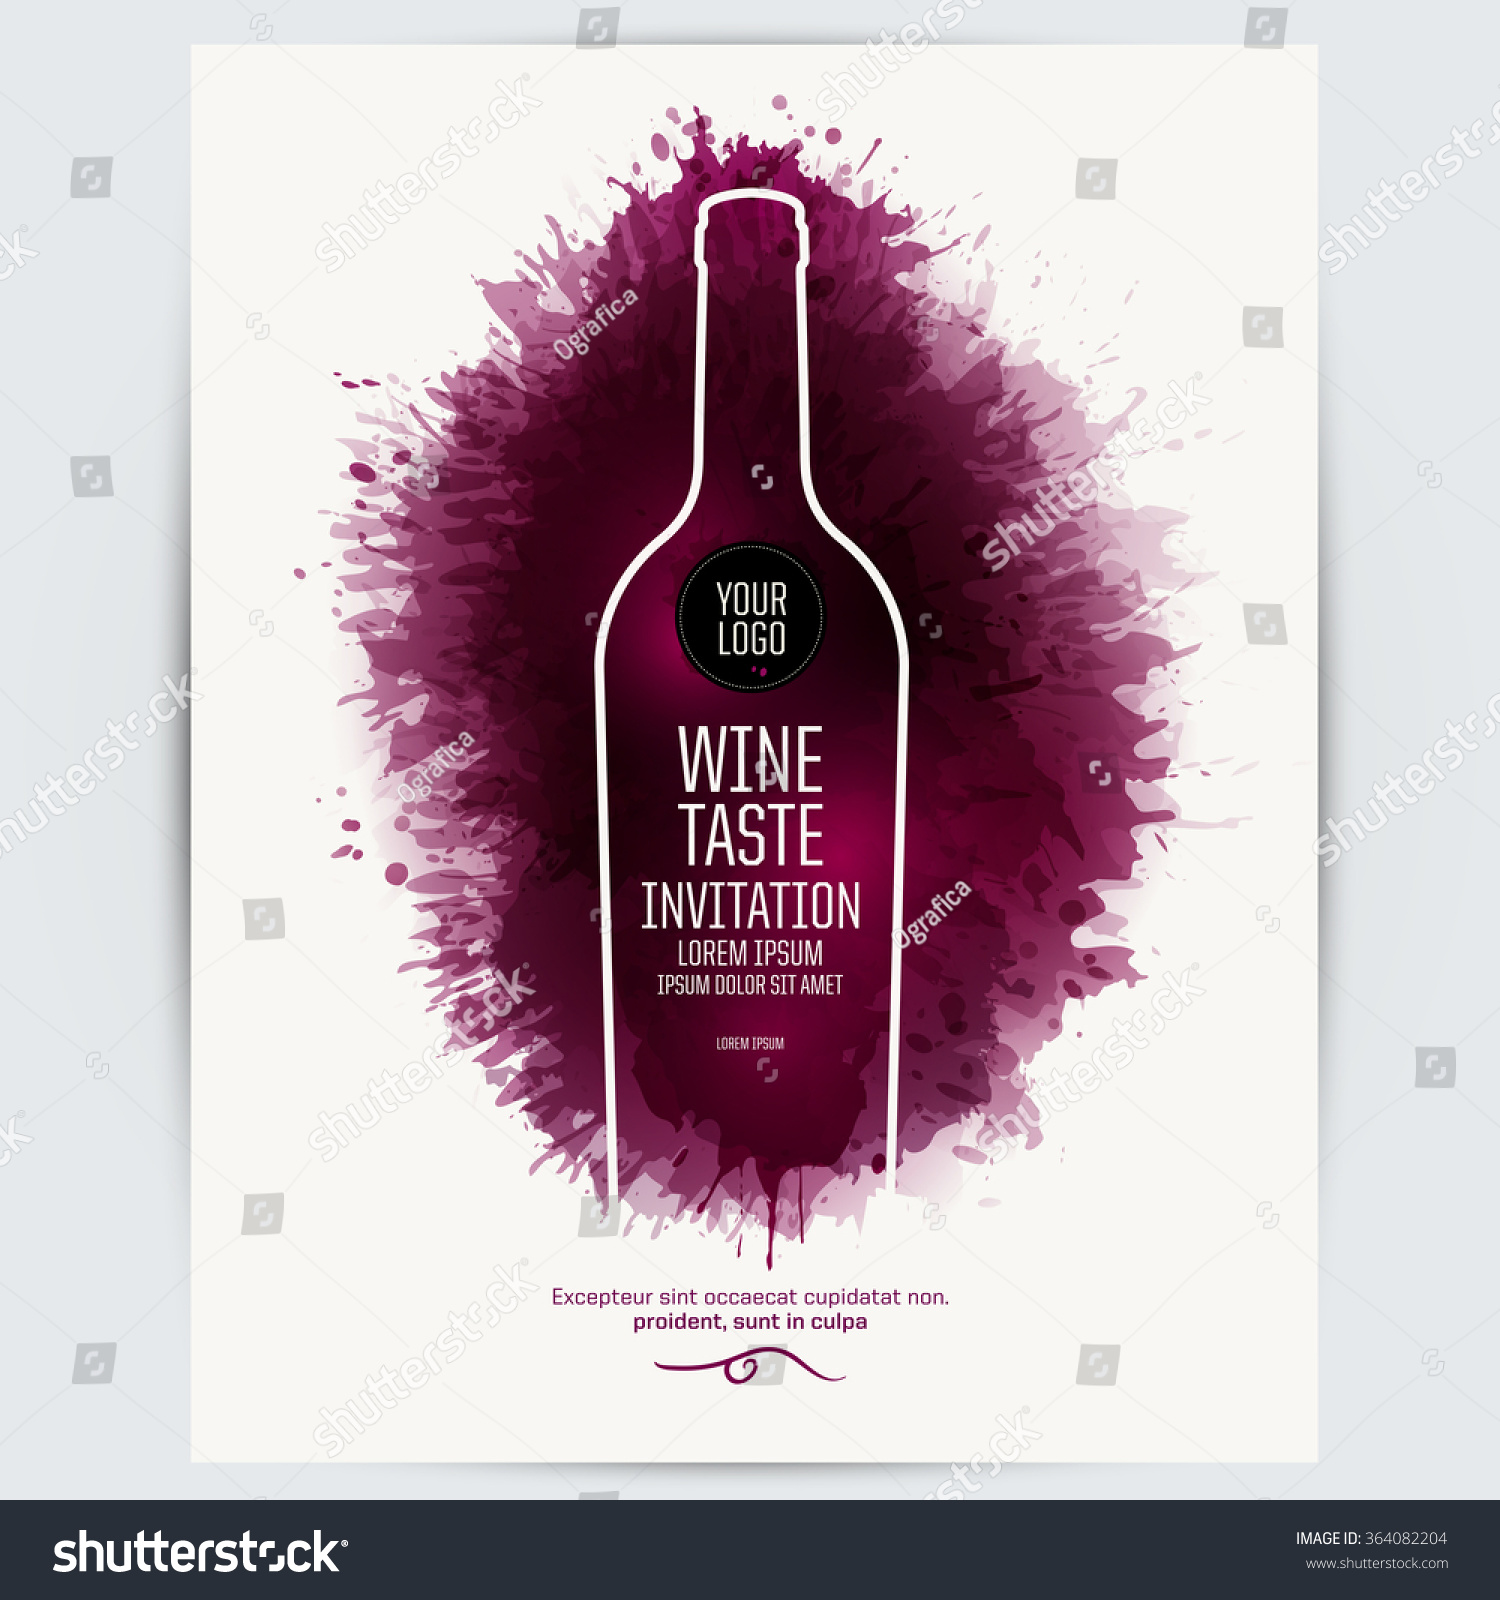 Wine Tasting Invitation Template was Lovely Ideas To Make Fresh Invitations Template